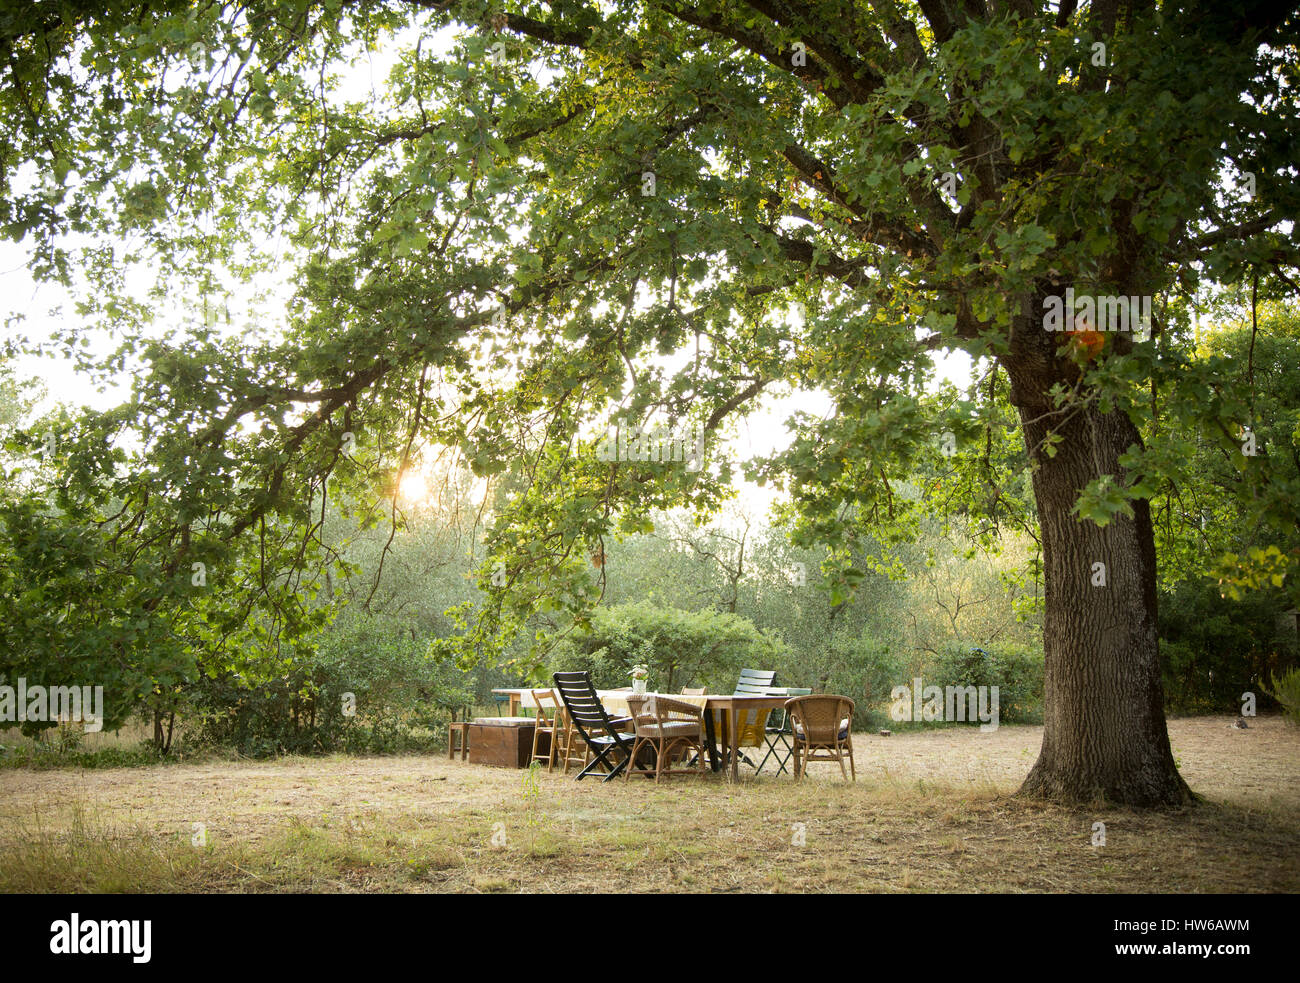 Outdoor dining in Tuscany, Italy. - Stock Image